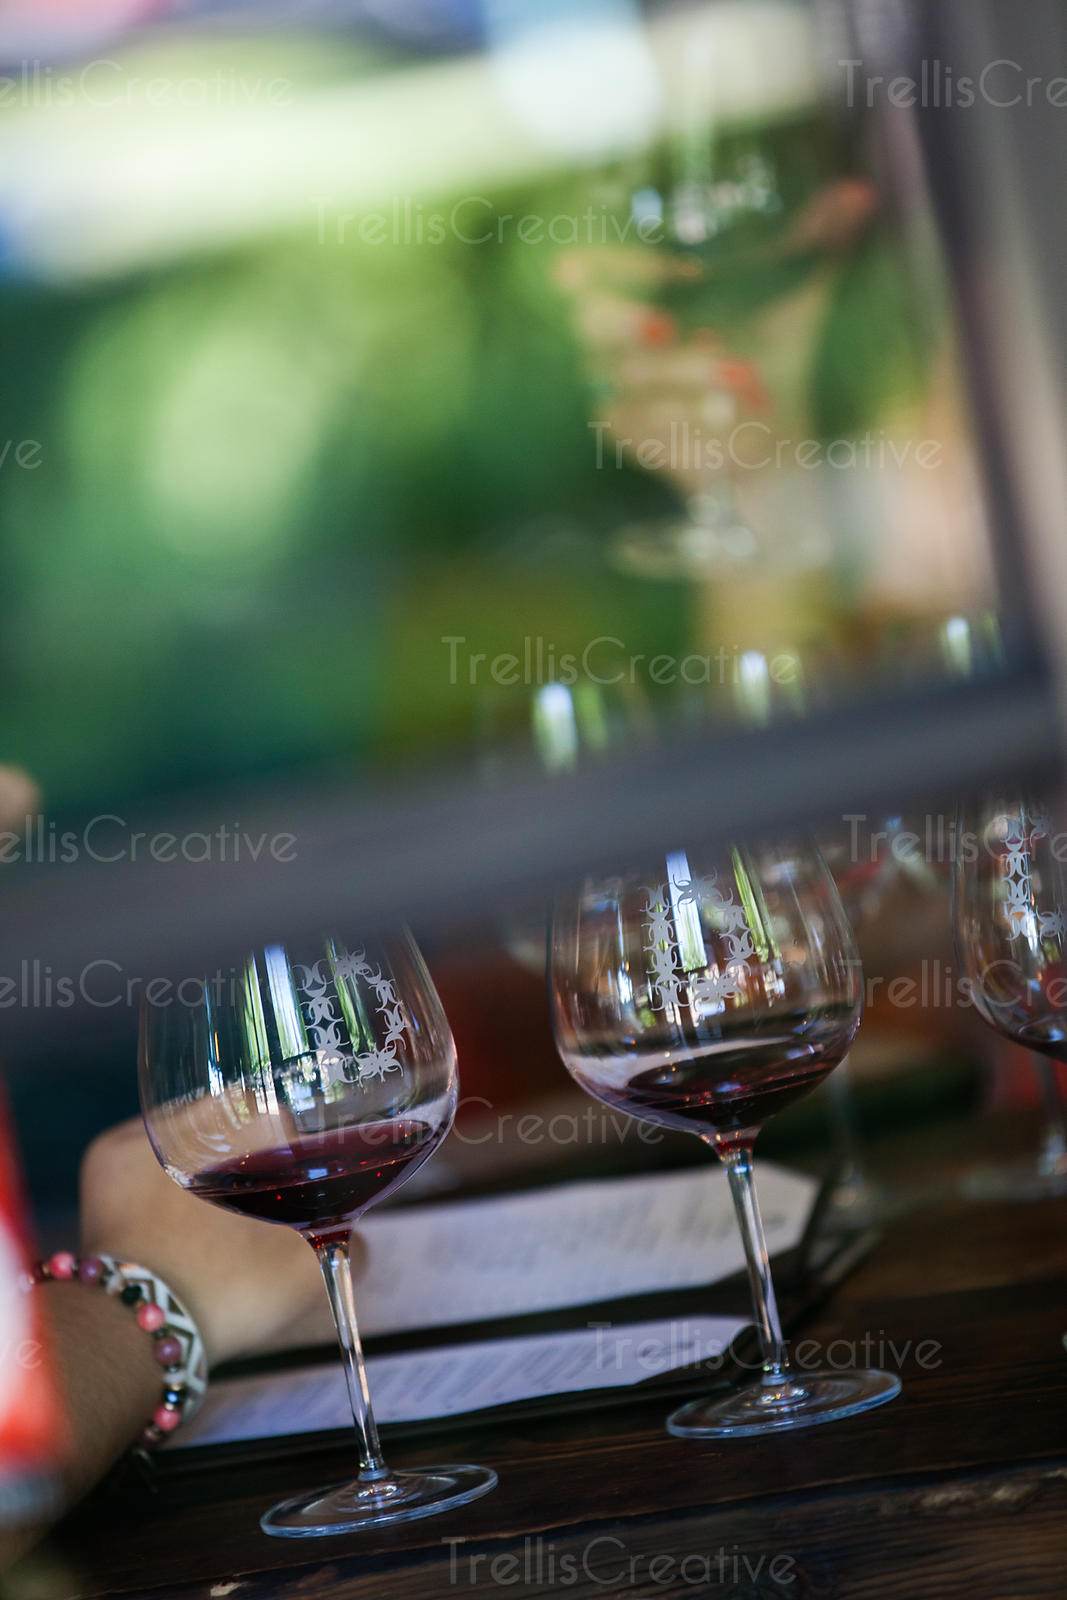 Red wine glasses on a table at dinner